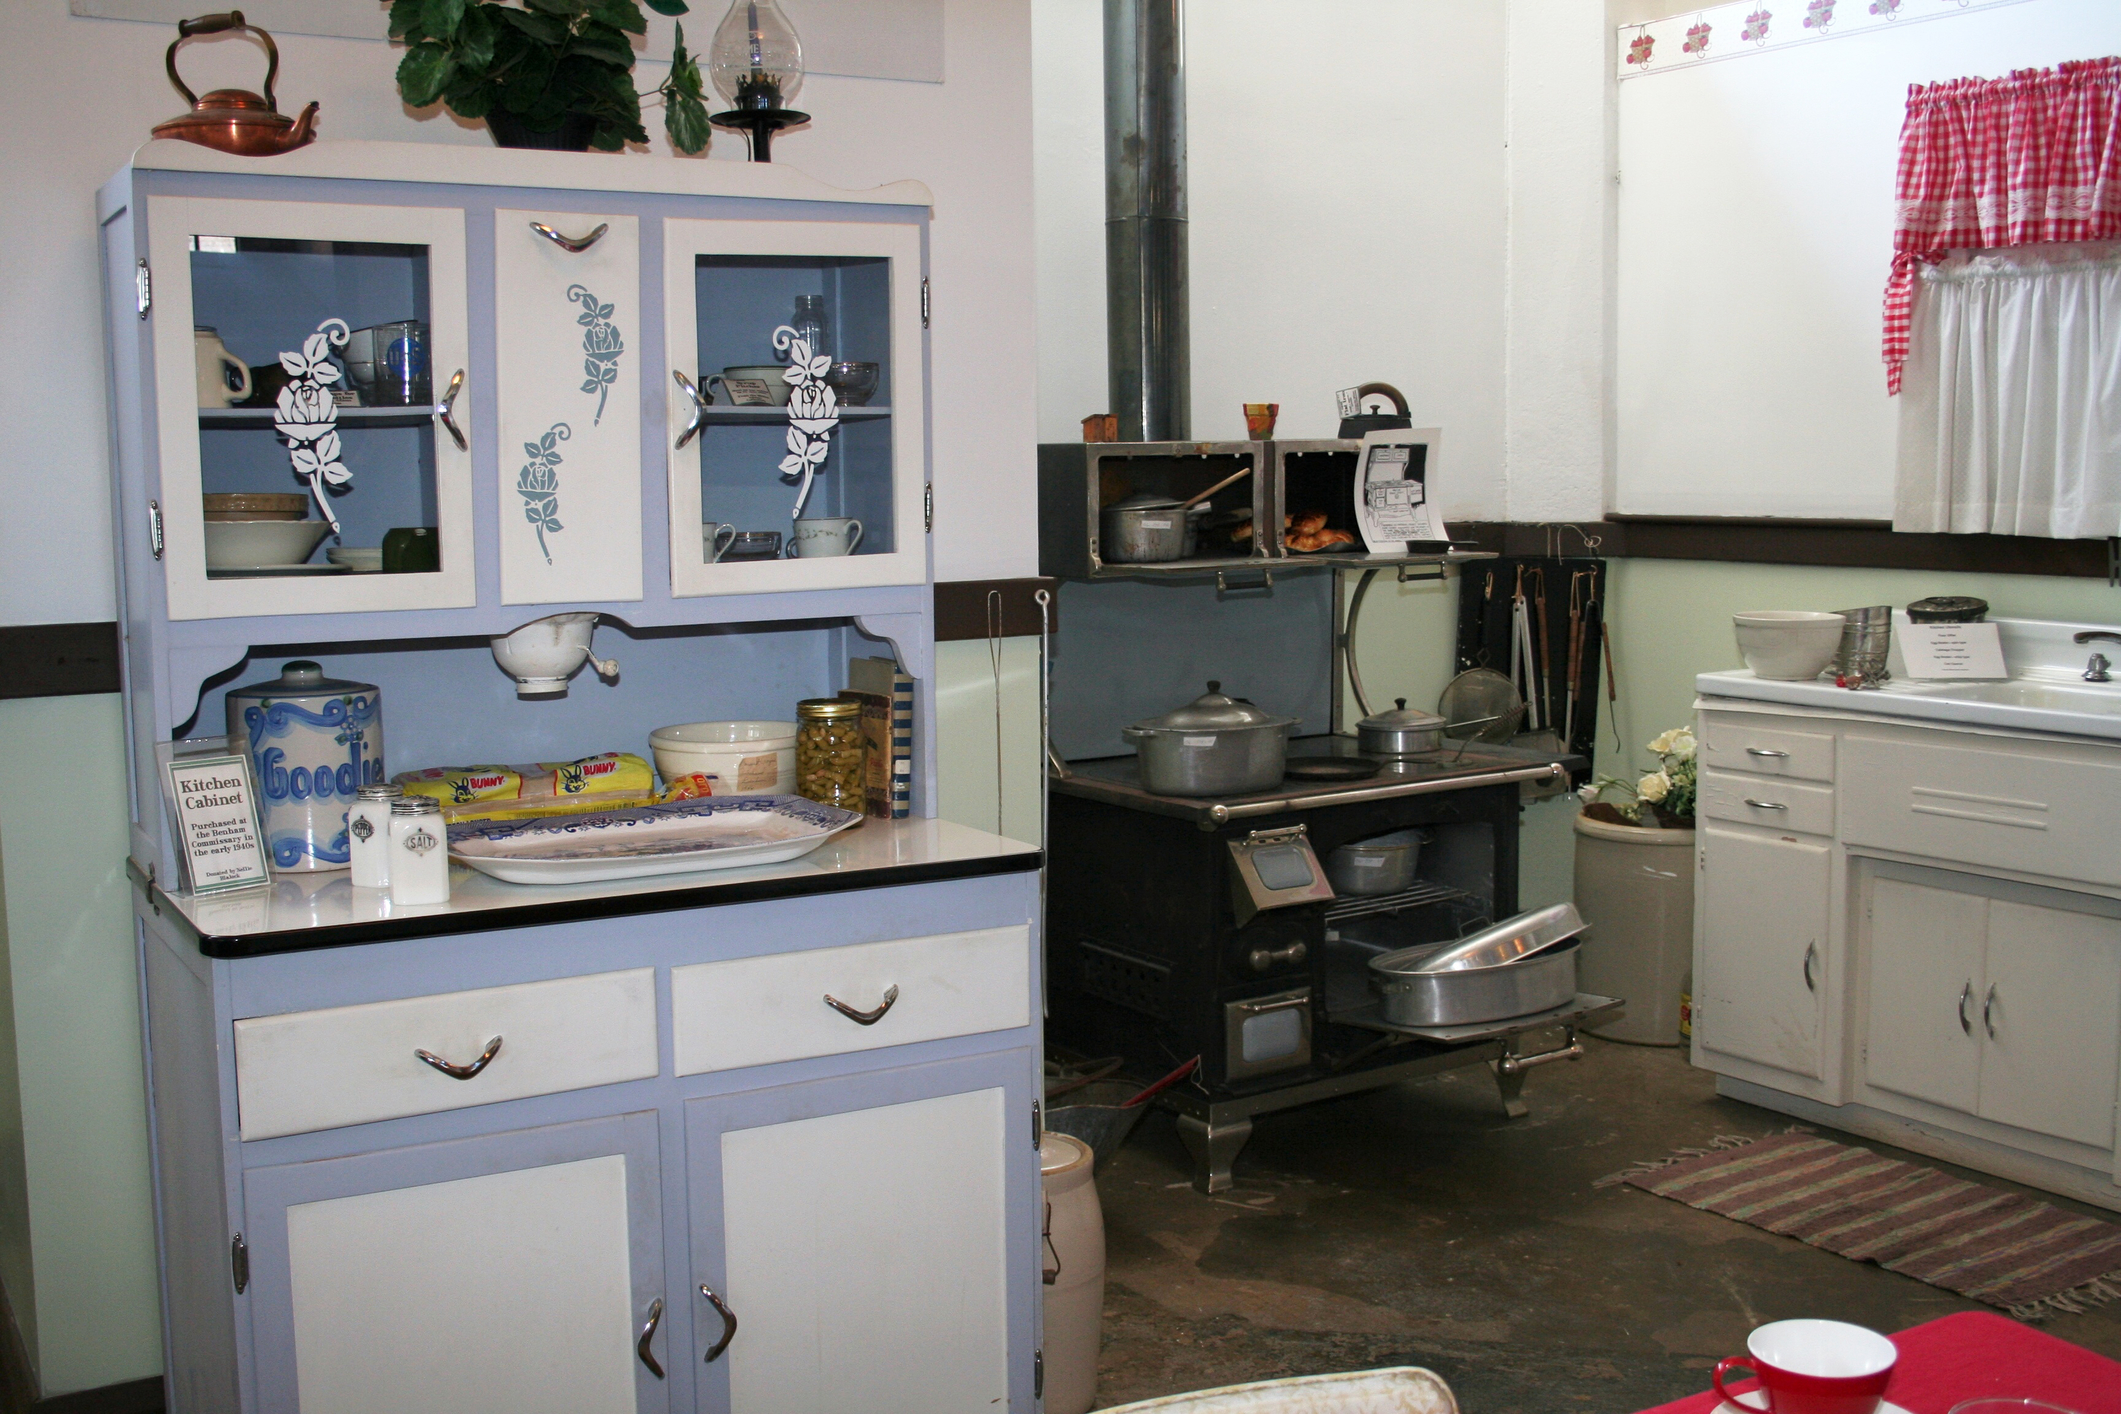 1940s Kitchen Cabinets 1940s Kitchen Design | LoveToKnow